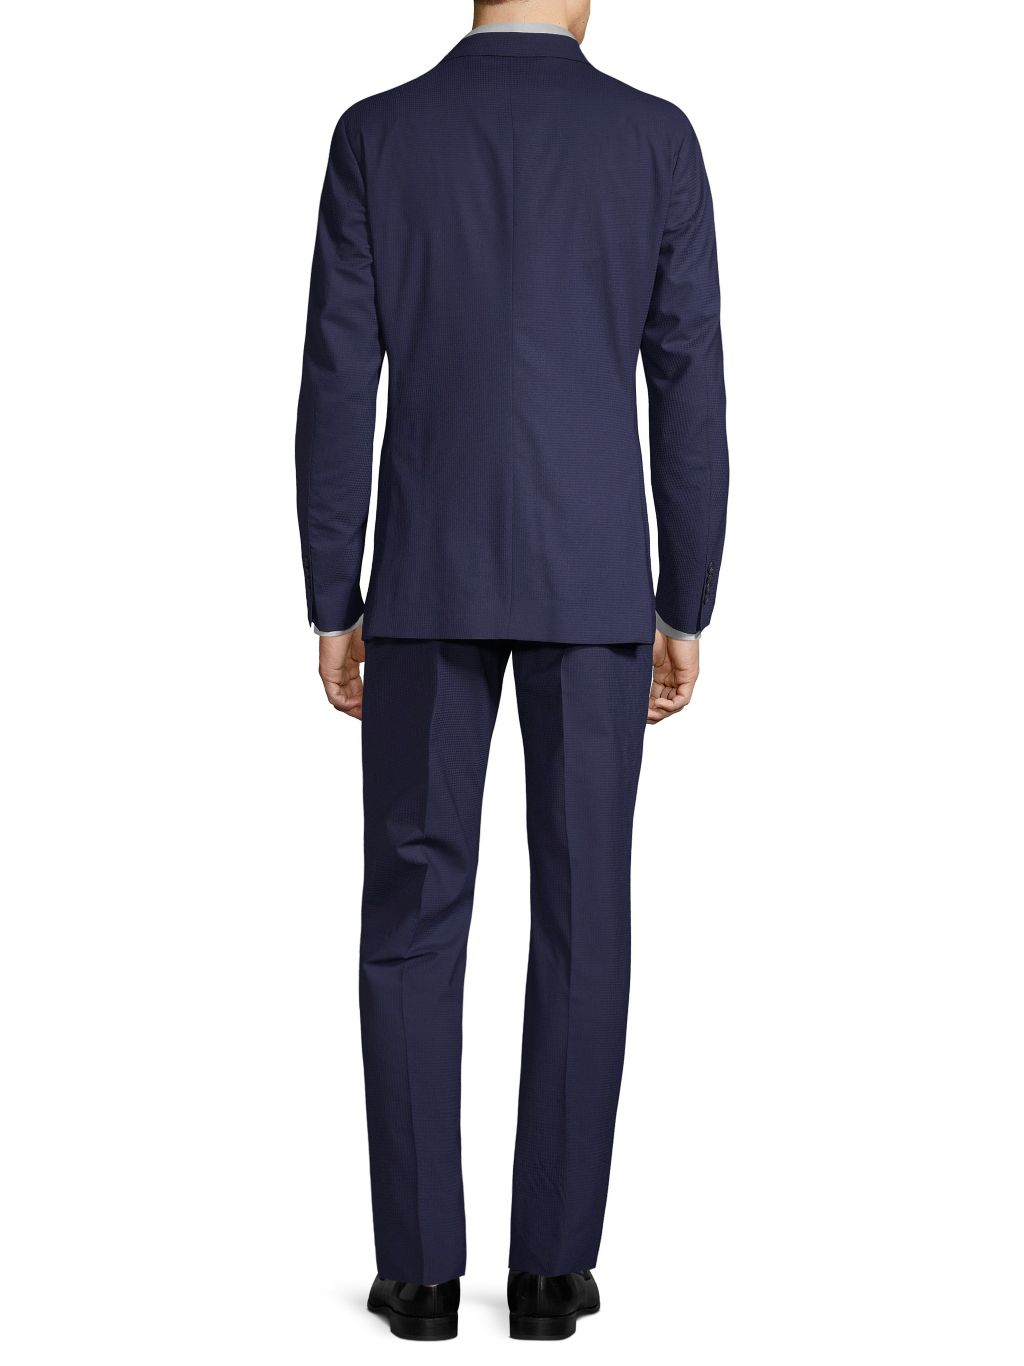 Saks Fifth Avenue Made in Italy Modern-Fit Tonal Striped Wool Suit